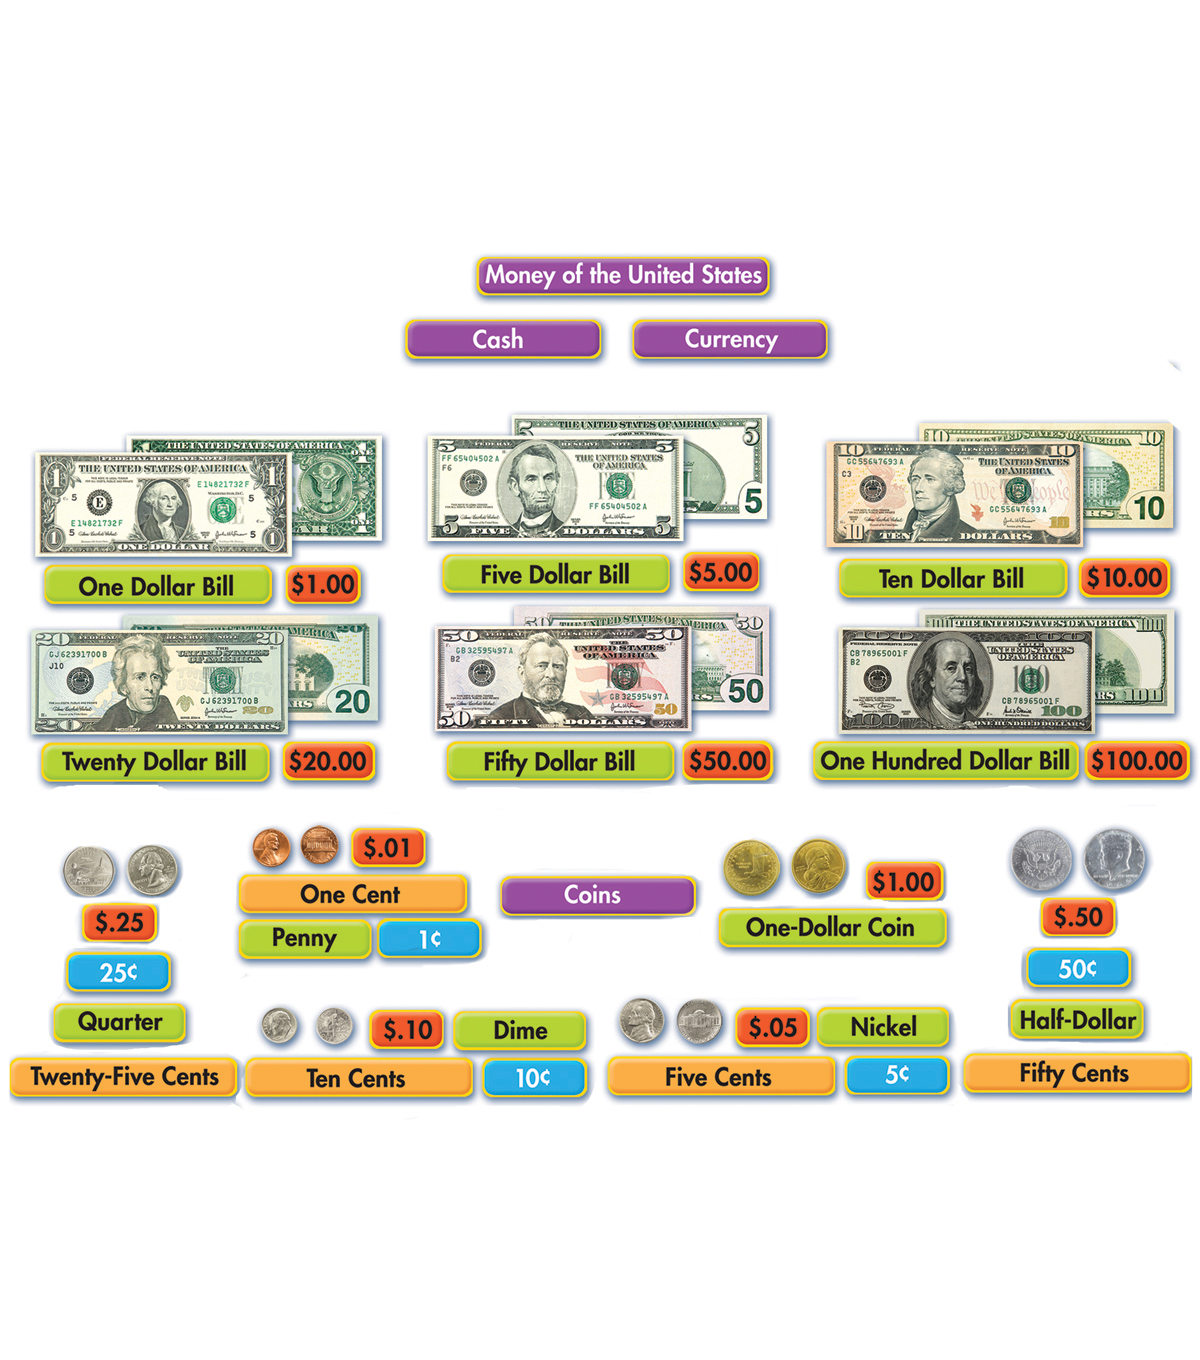 Eureka Mini Bulletin Board Set-Money